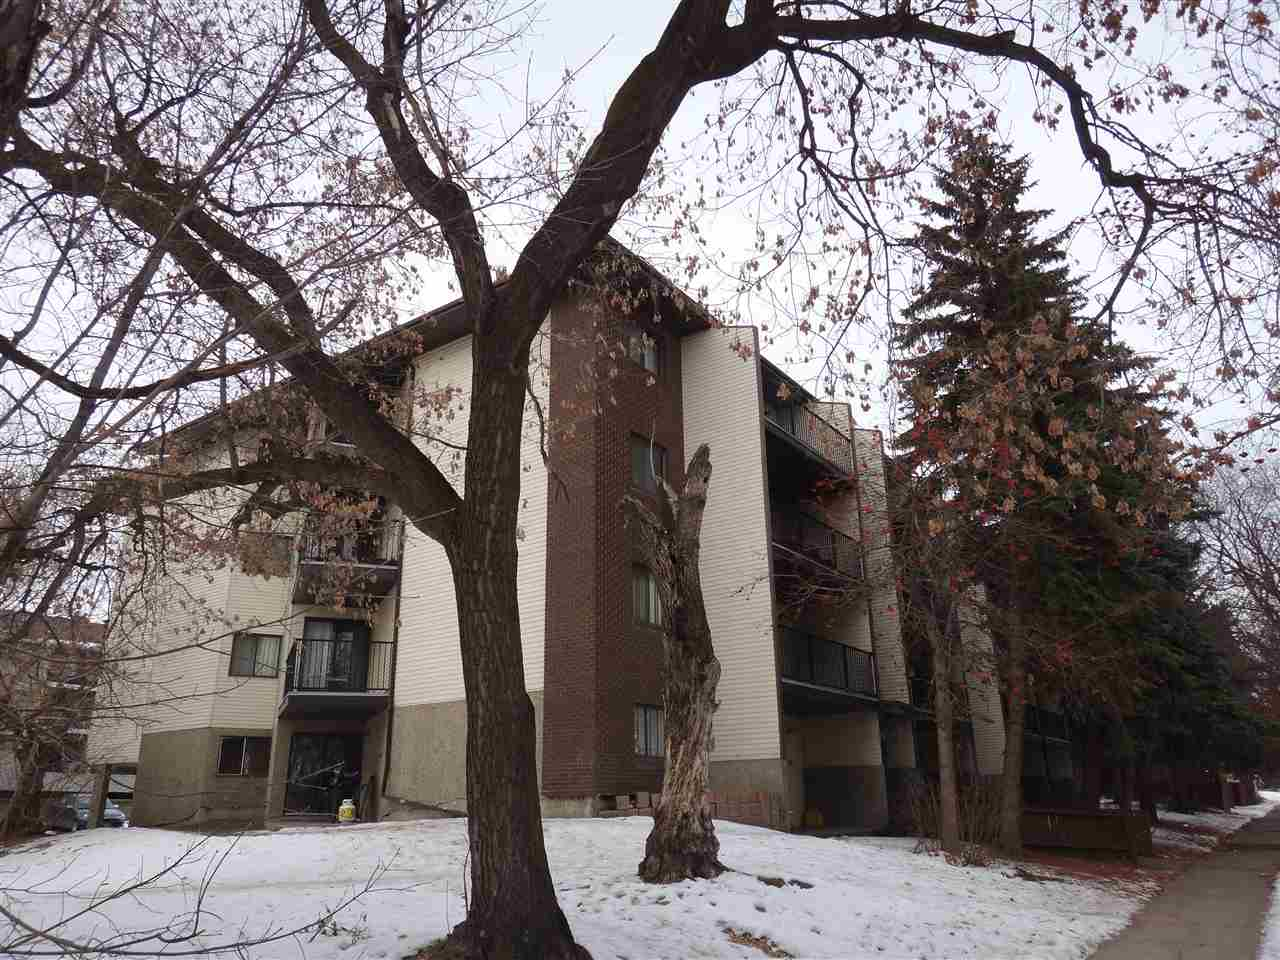 UPGRADED SECOND FLOOR CONDO UNIT WITH LARGE BALCONY FACING GREEN SPACE.PLENTY OF KITCHEN CABINETS WITH NEW APPLIANCES.FRESHLY PAINTED,NEW FLOORING,TRIMS AND LIGHT FIXTURES.GOOD SIZE STORAGE ROOM IN THE UNIT.CLOSE TO ALL AMENITIES.LOW CONDO FEE.